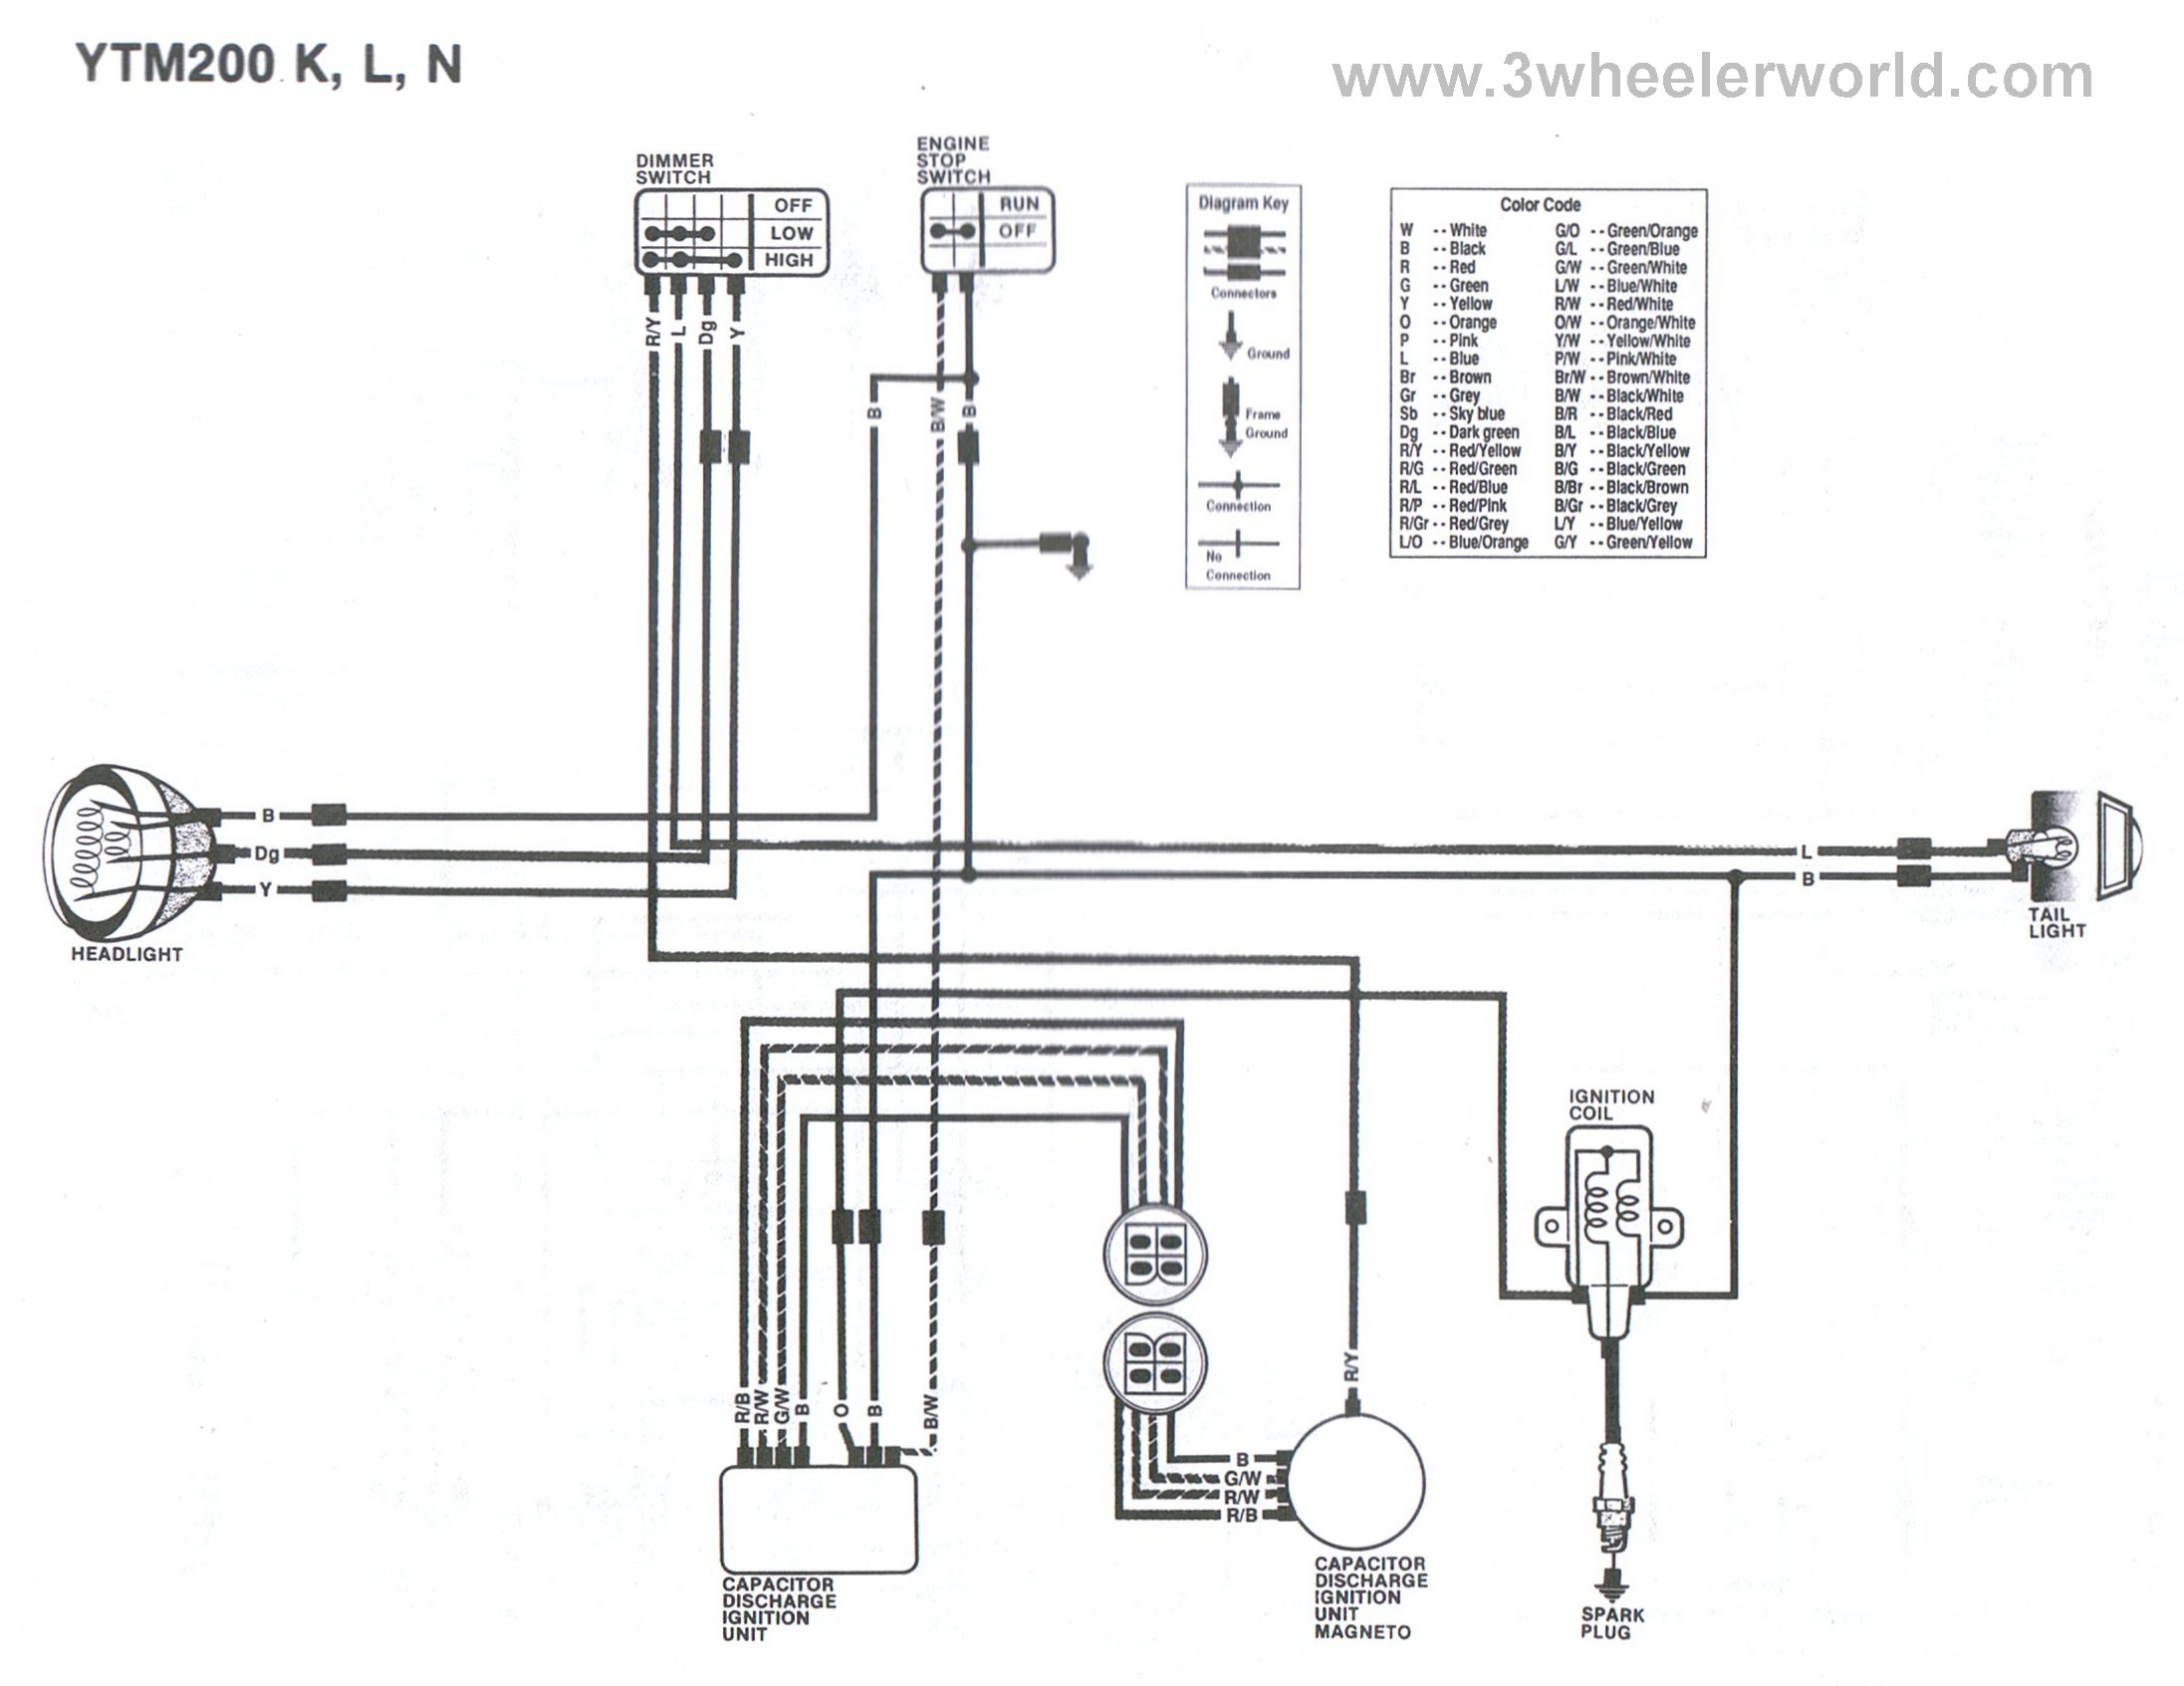 YTM200KLN 3 wheeler world tech help yamaha wiring diagrams JVC G320 Wiring Harness at fashall.co